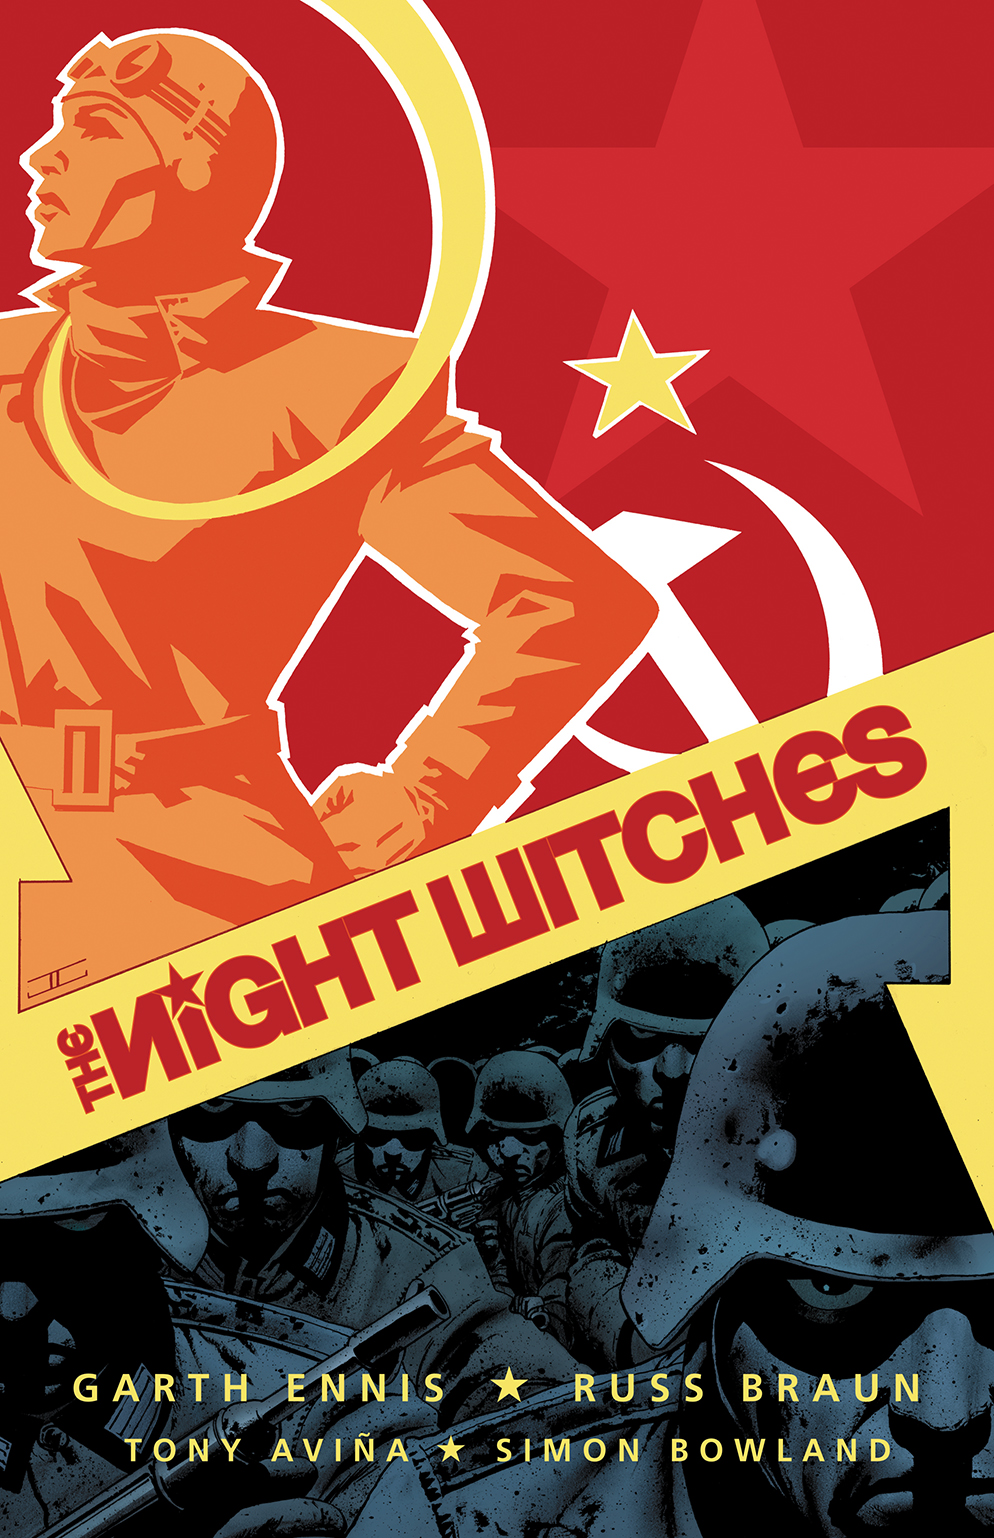 Capa de John Cassaday para o primeiro exemplar da mini-série: Battlefields - The Night Witches